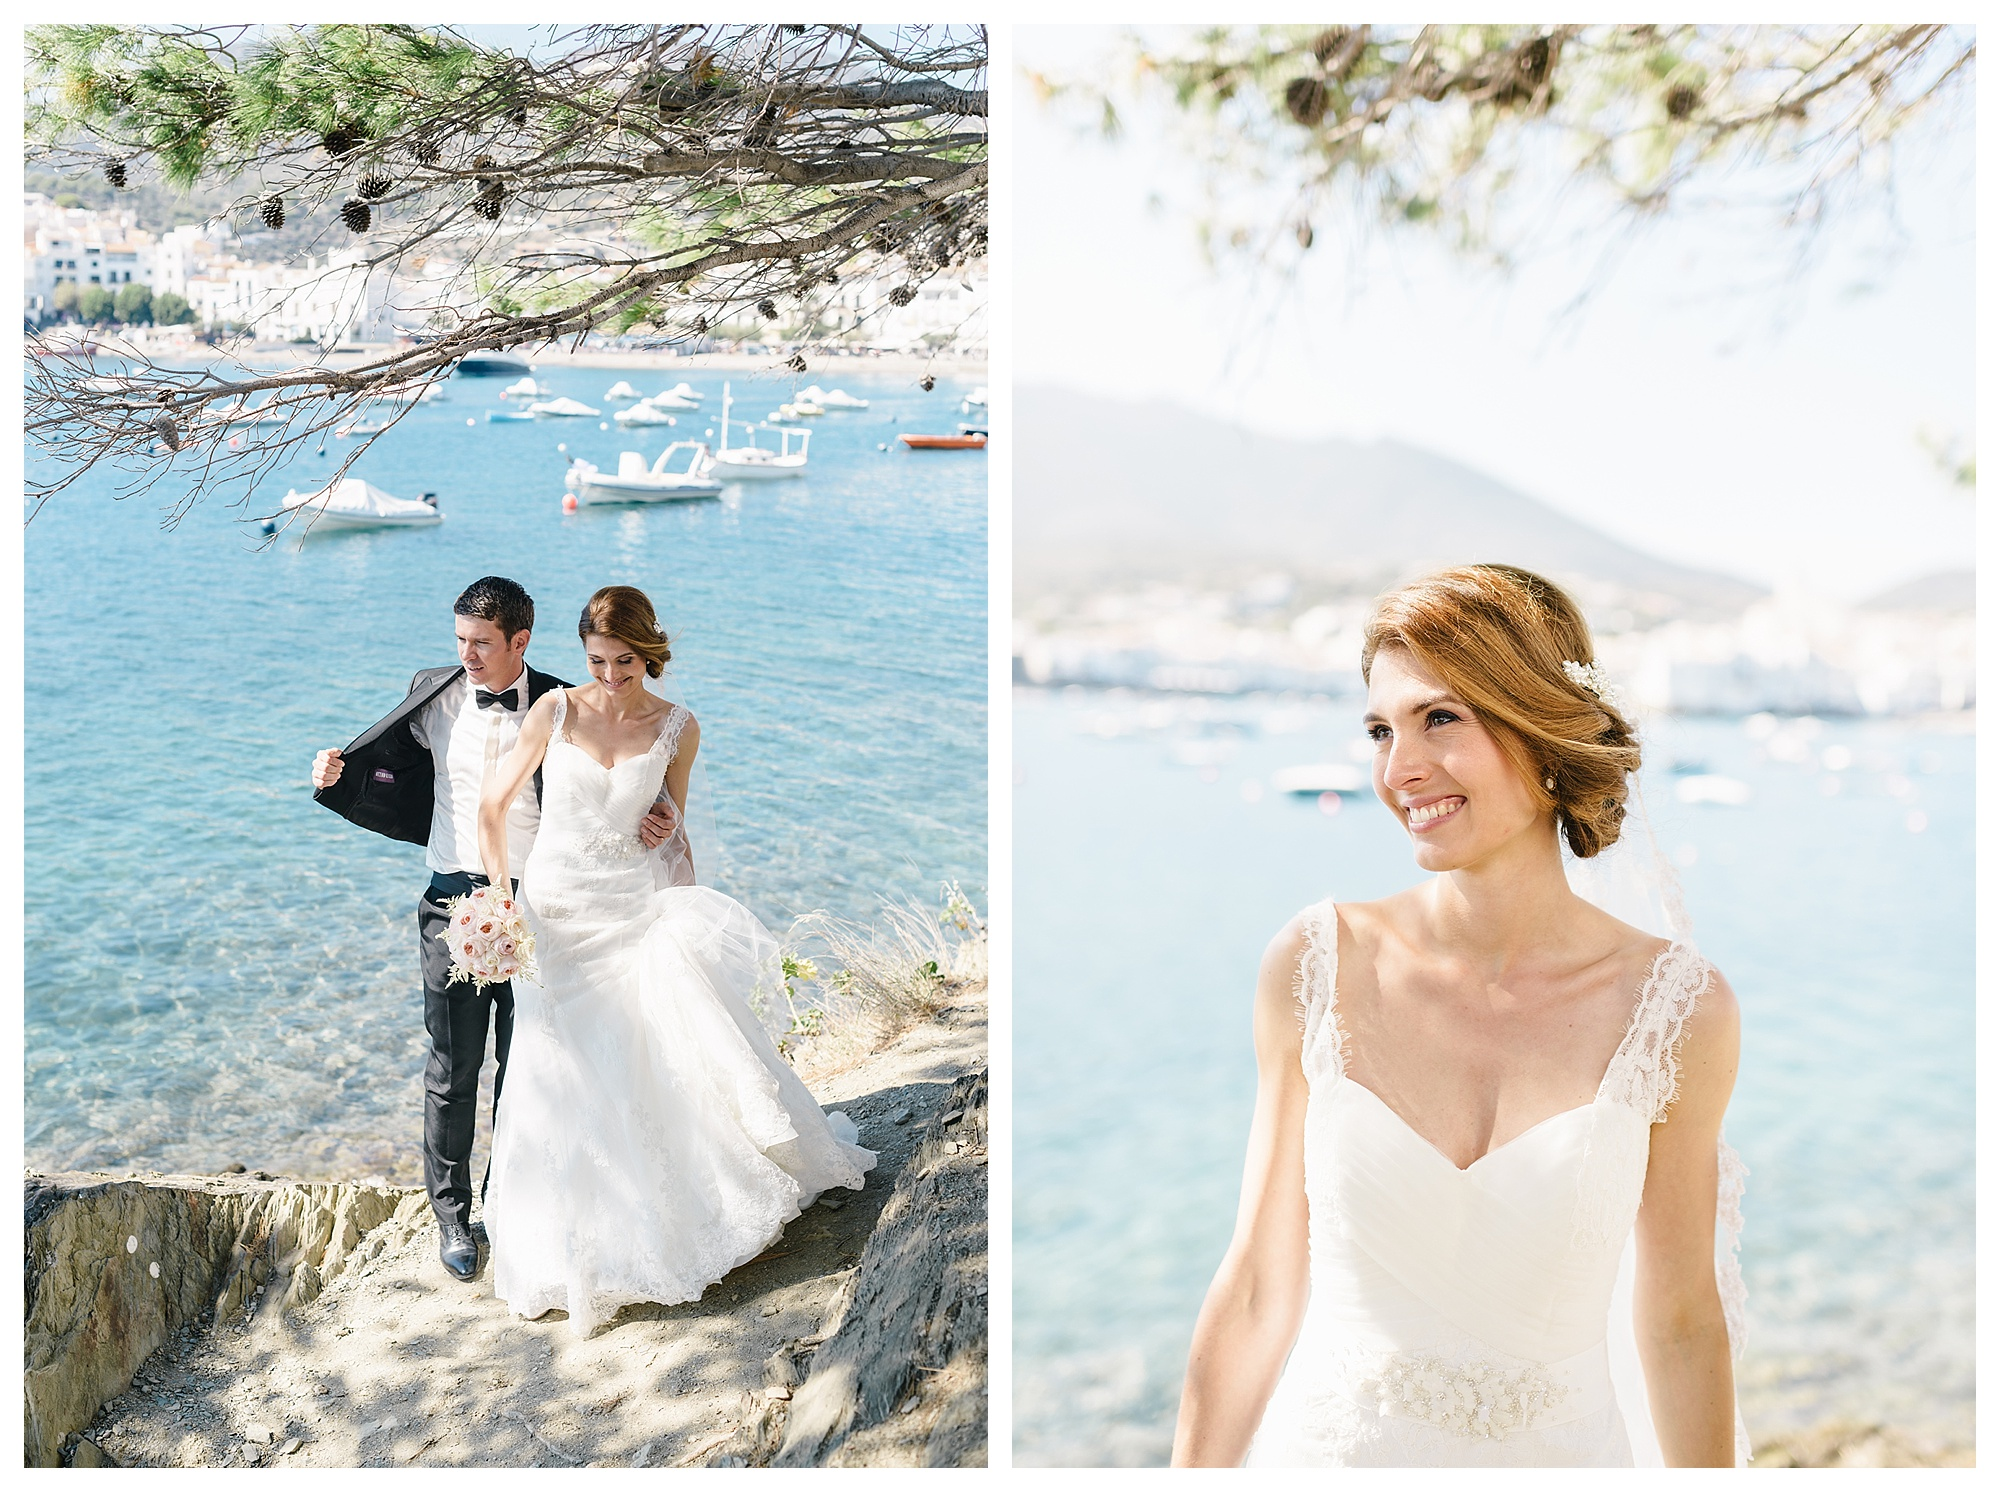 Fotograf Konstanz - Wedding Spain Cadaques Elmar Feuerbacher Photography 31 - Als Destination Wedding Fotograf in Cadaqués, Spanien  - 31 -